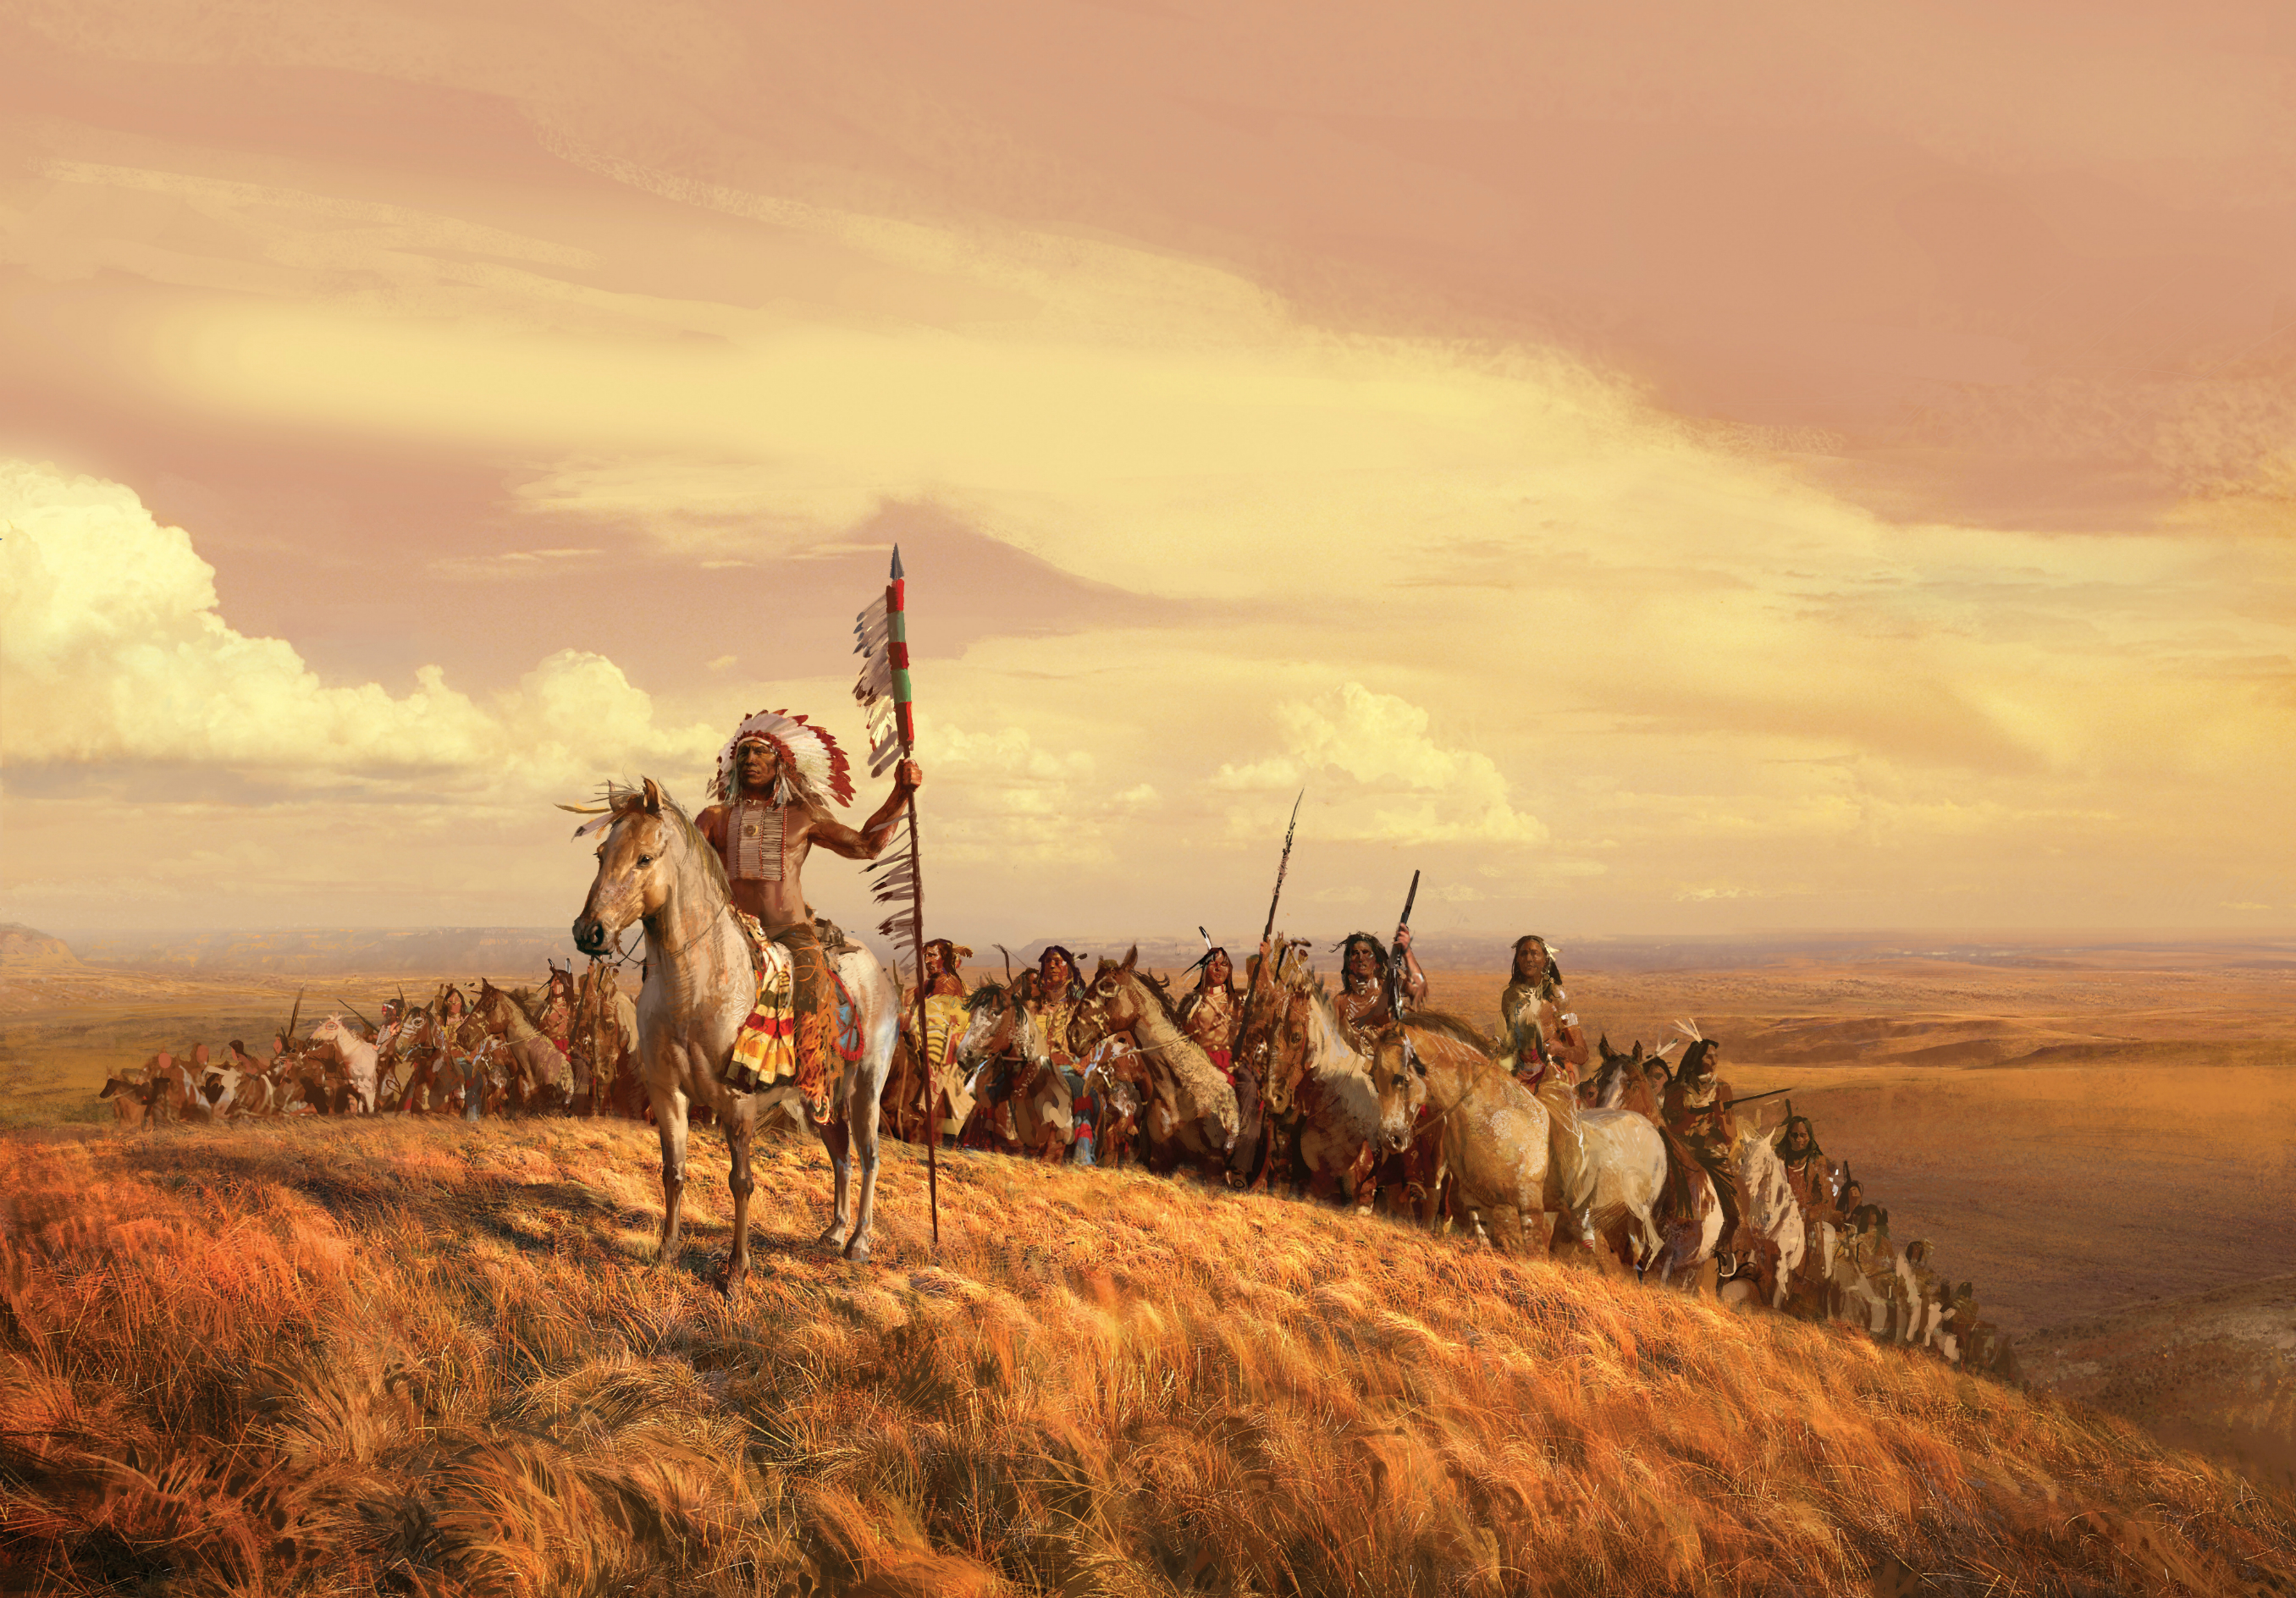 artistic native american age of empires wallpaper